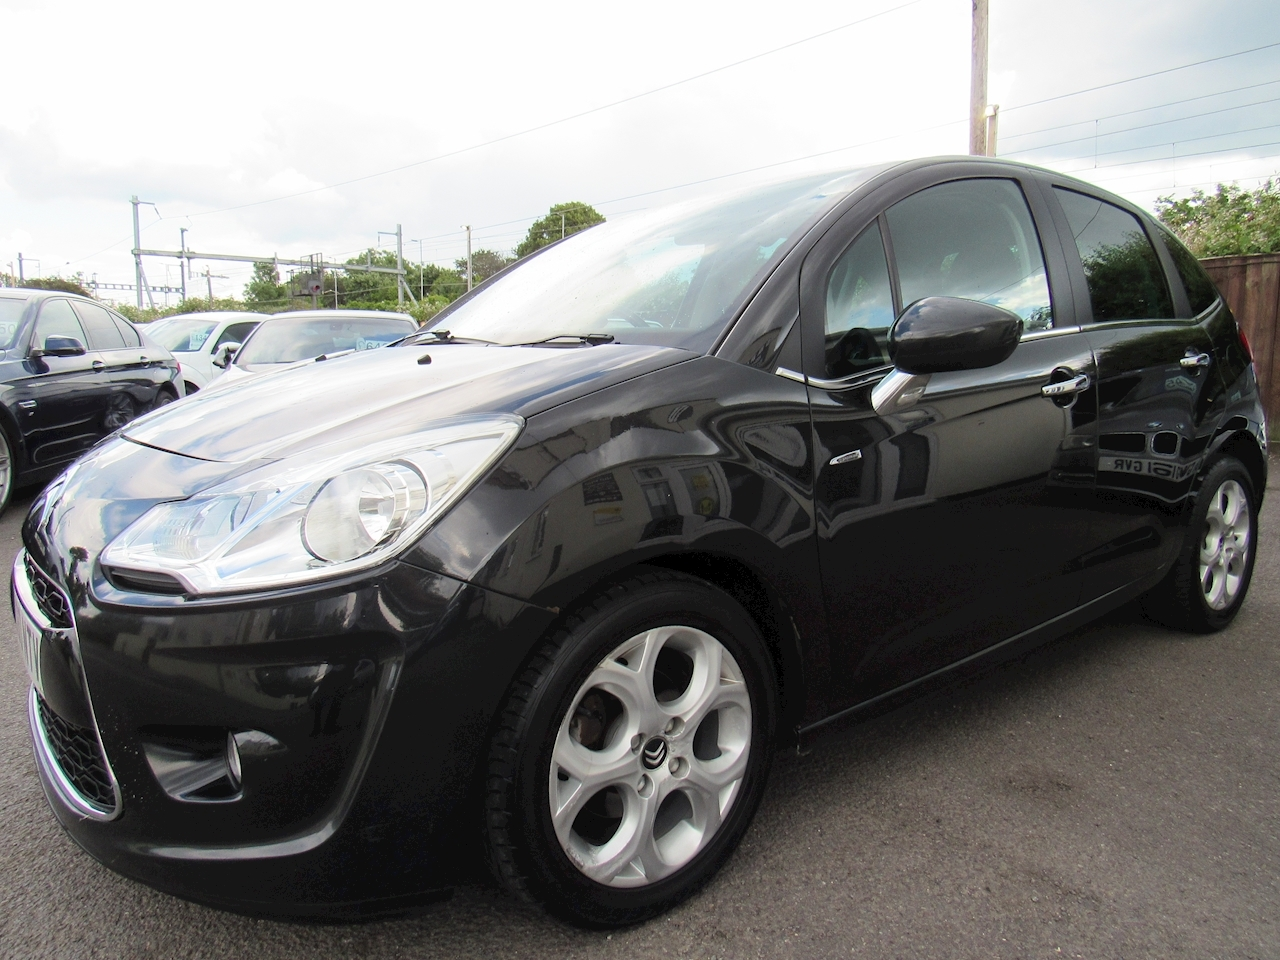 Citroen C3 Hdi Exclusive Hatchback 1.6 Manual Diesel